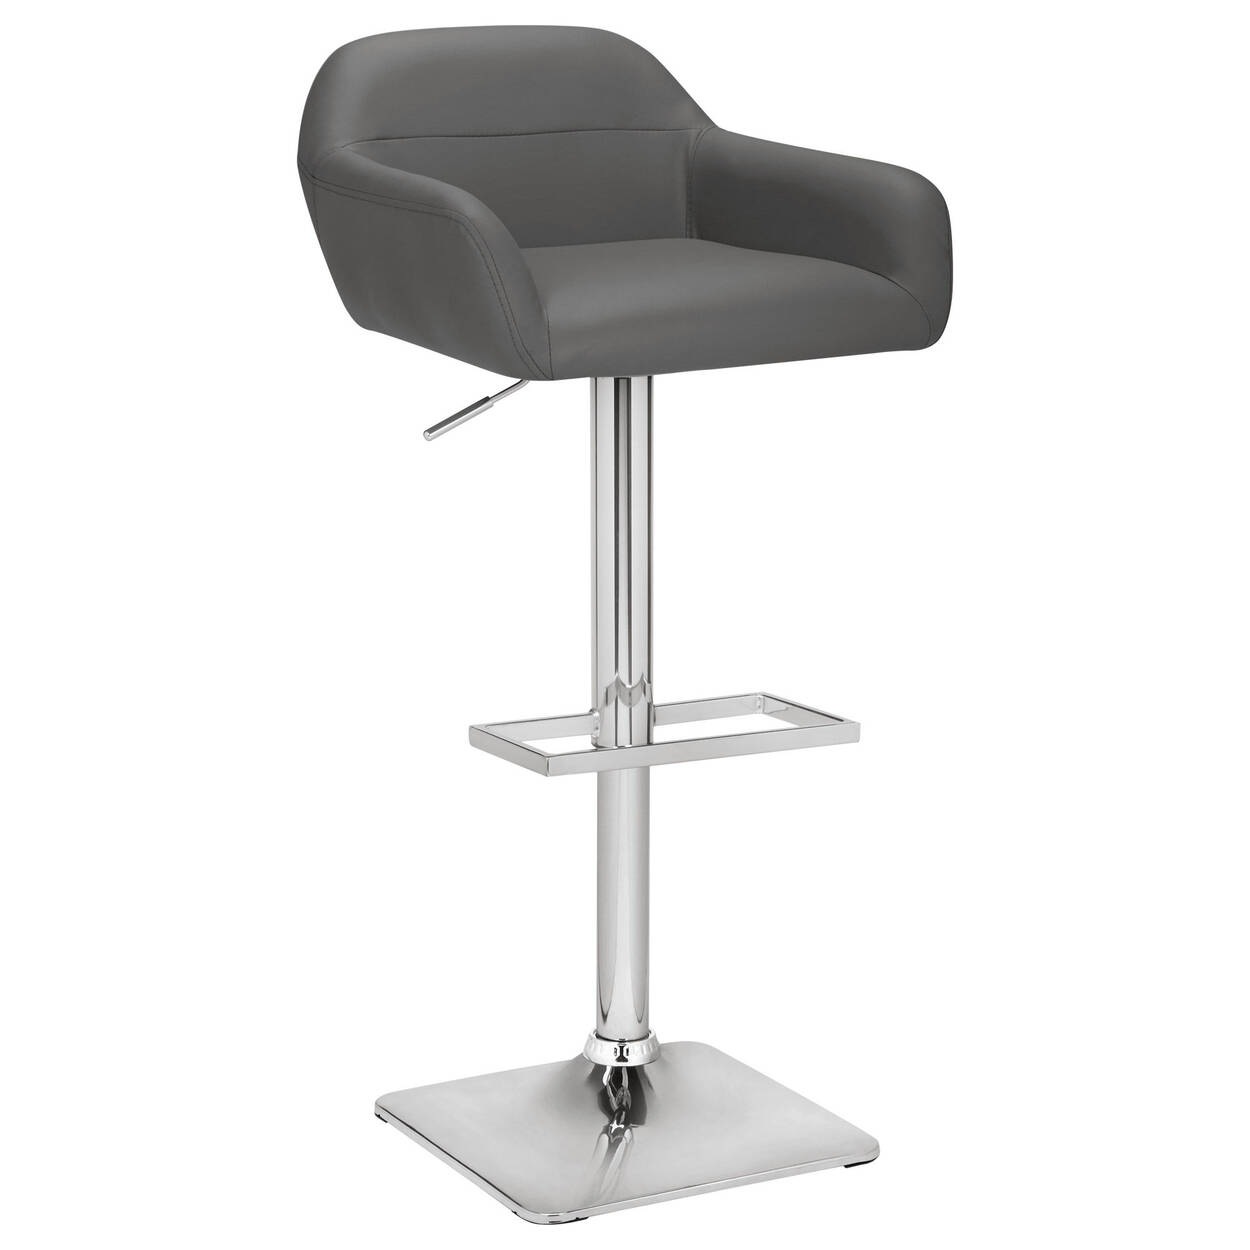 faux leather and chrome adjustable bar stool. Black Bedroom Furniture Sets. Home Design Ideas